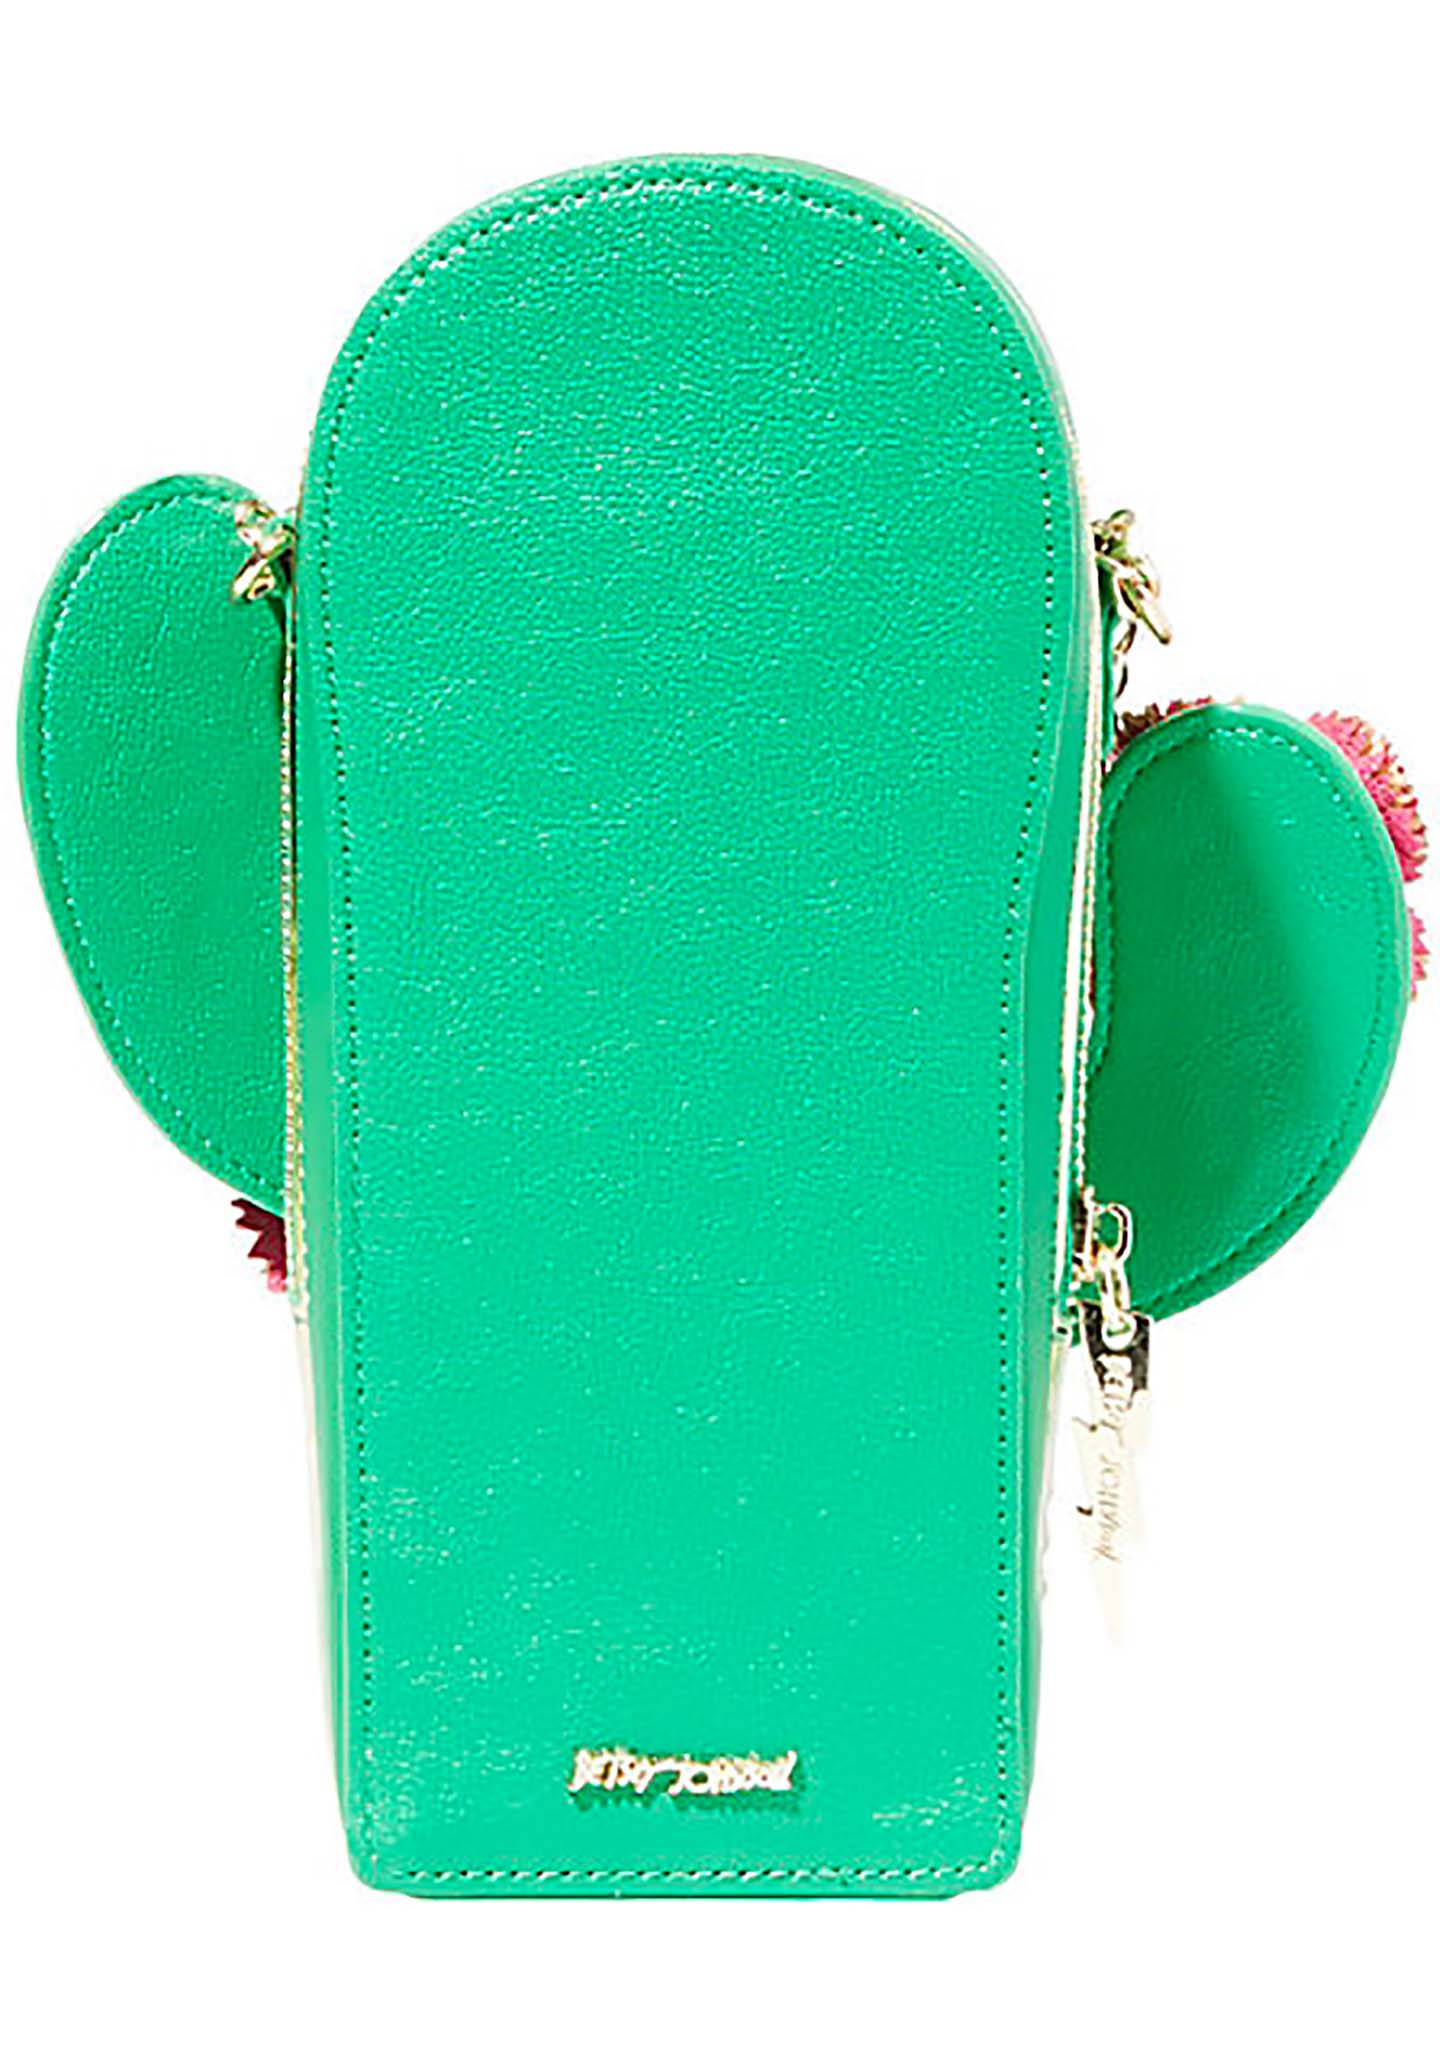 Kitsch Lookin Sharp Cactus Crossbody Bag